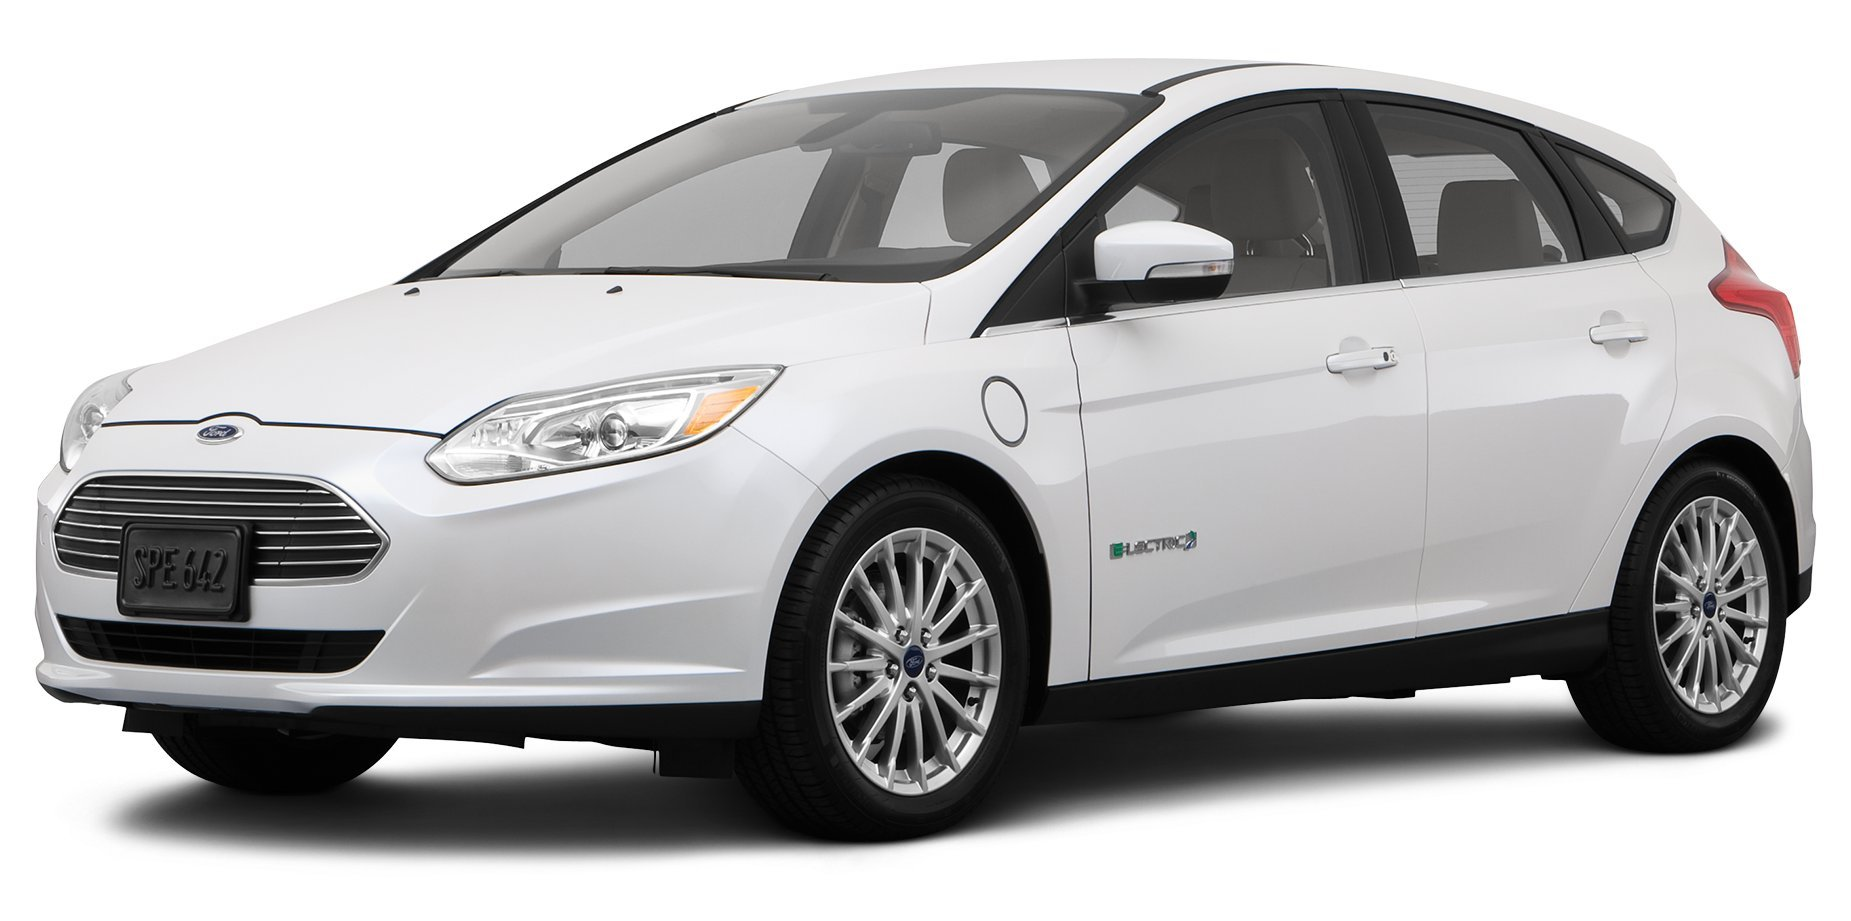 factory outlets store various styles Amazon.com: 2012 Ford Focus Reviews, Images, and Specs: Vehicles